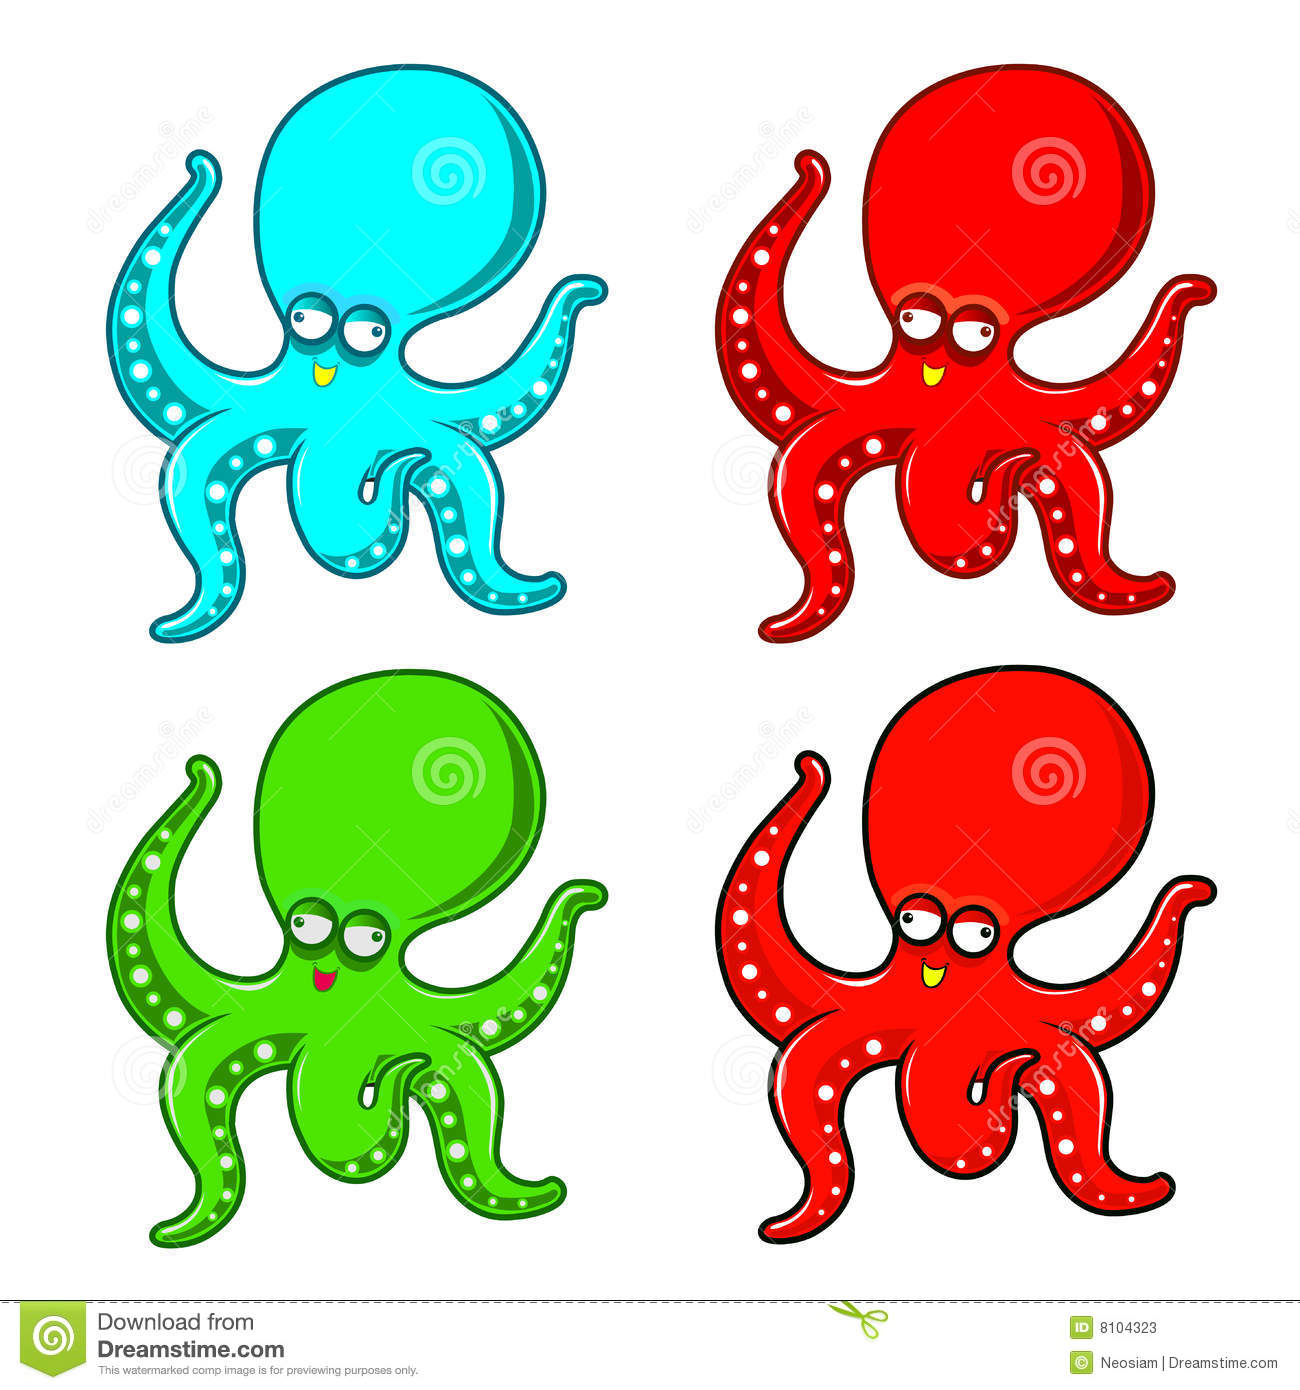 Octopus Cartoon Stock Photos - Image: 8104323